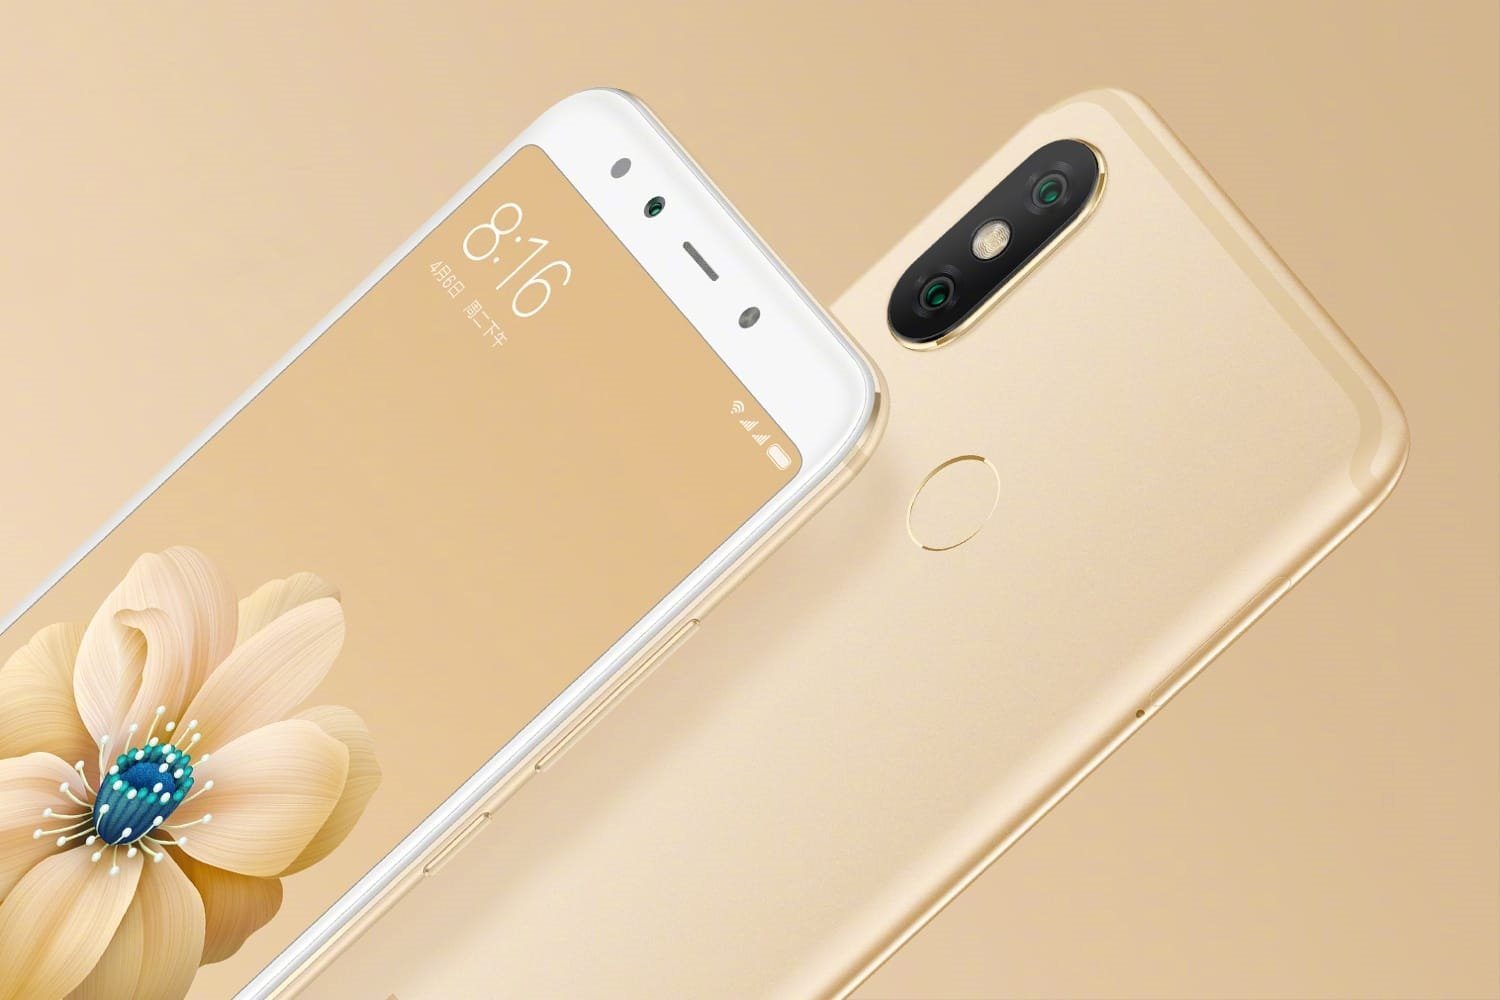 xiaomi-redmi-s2-32gb-gold-magico.md